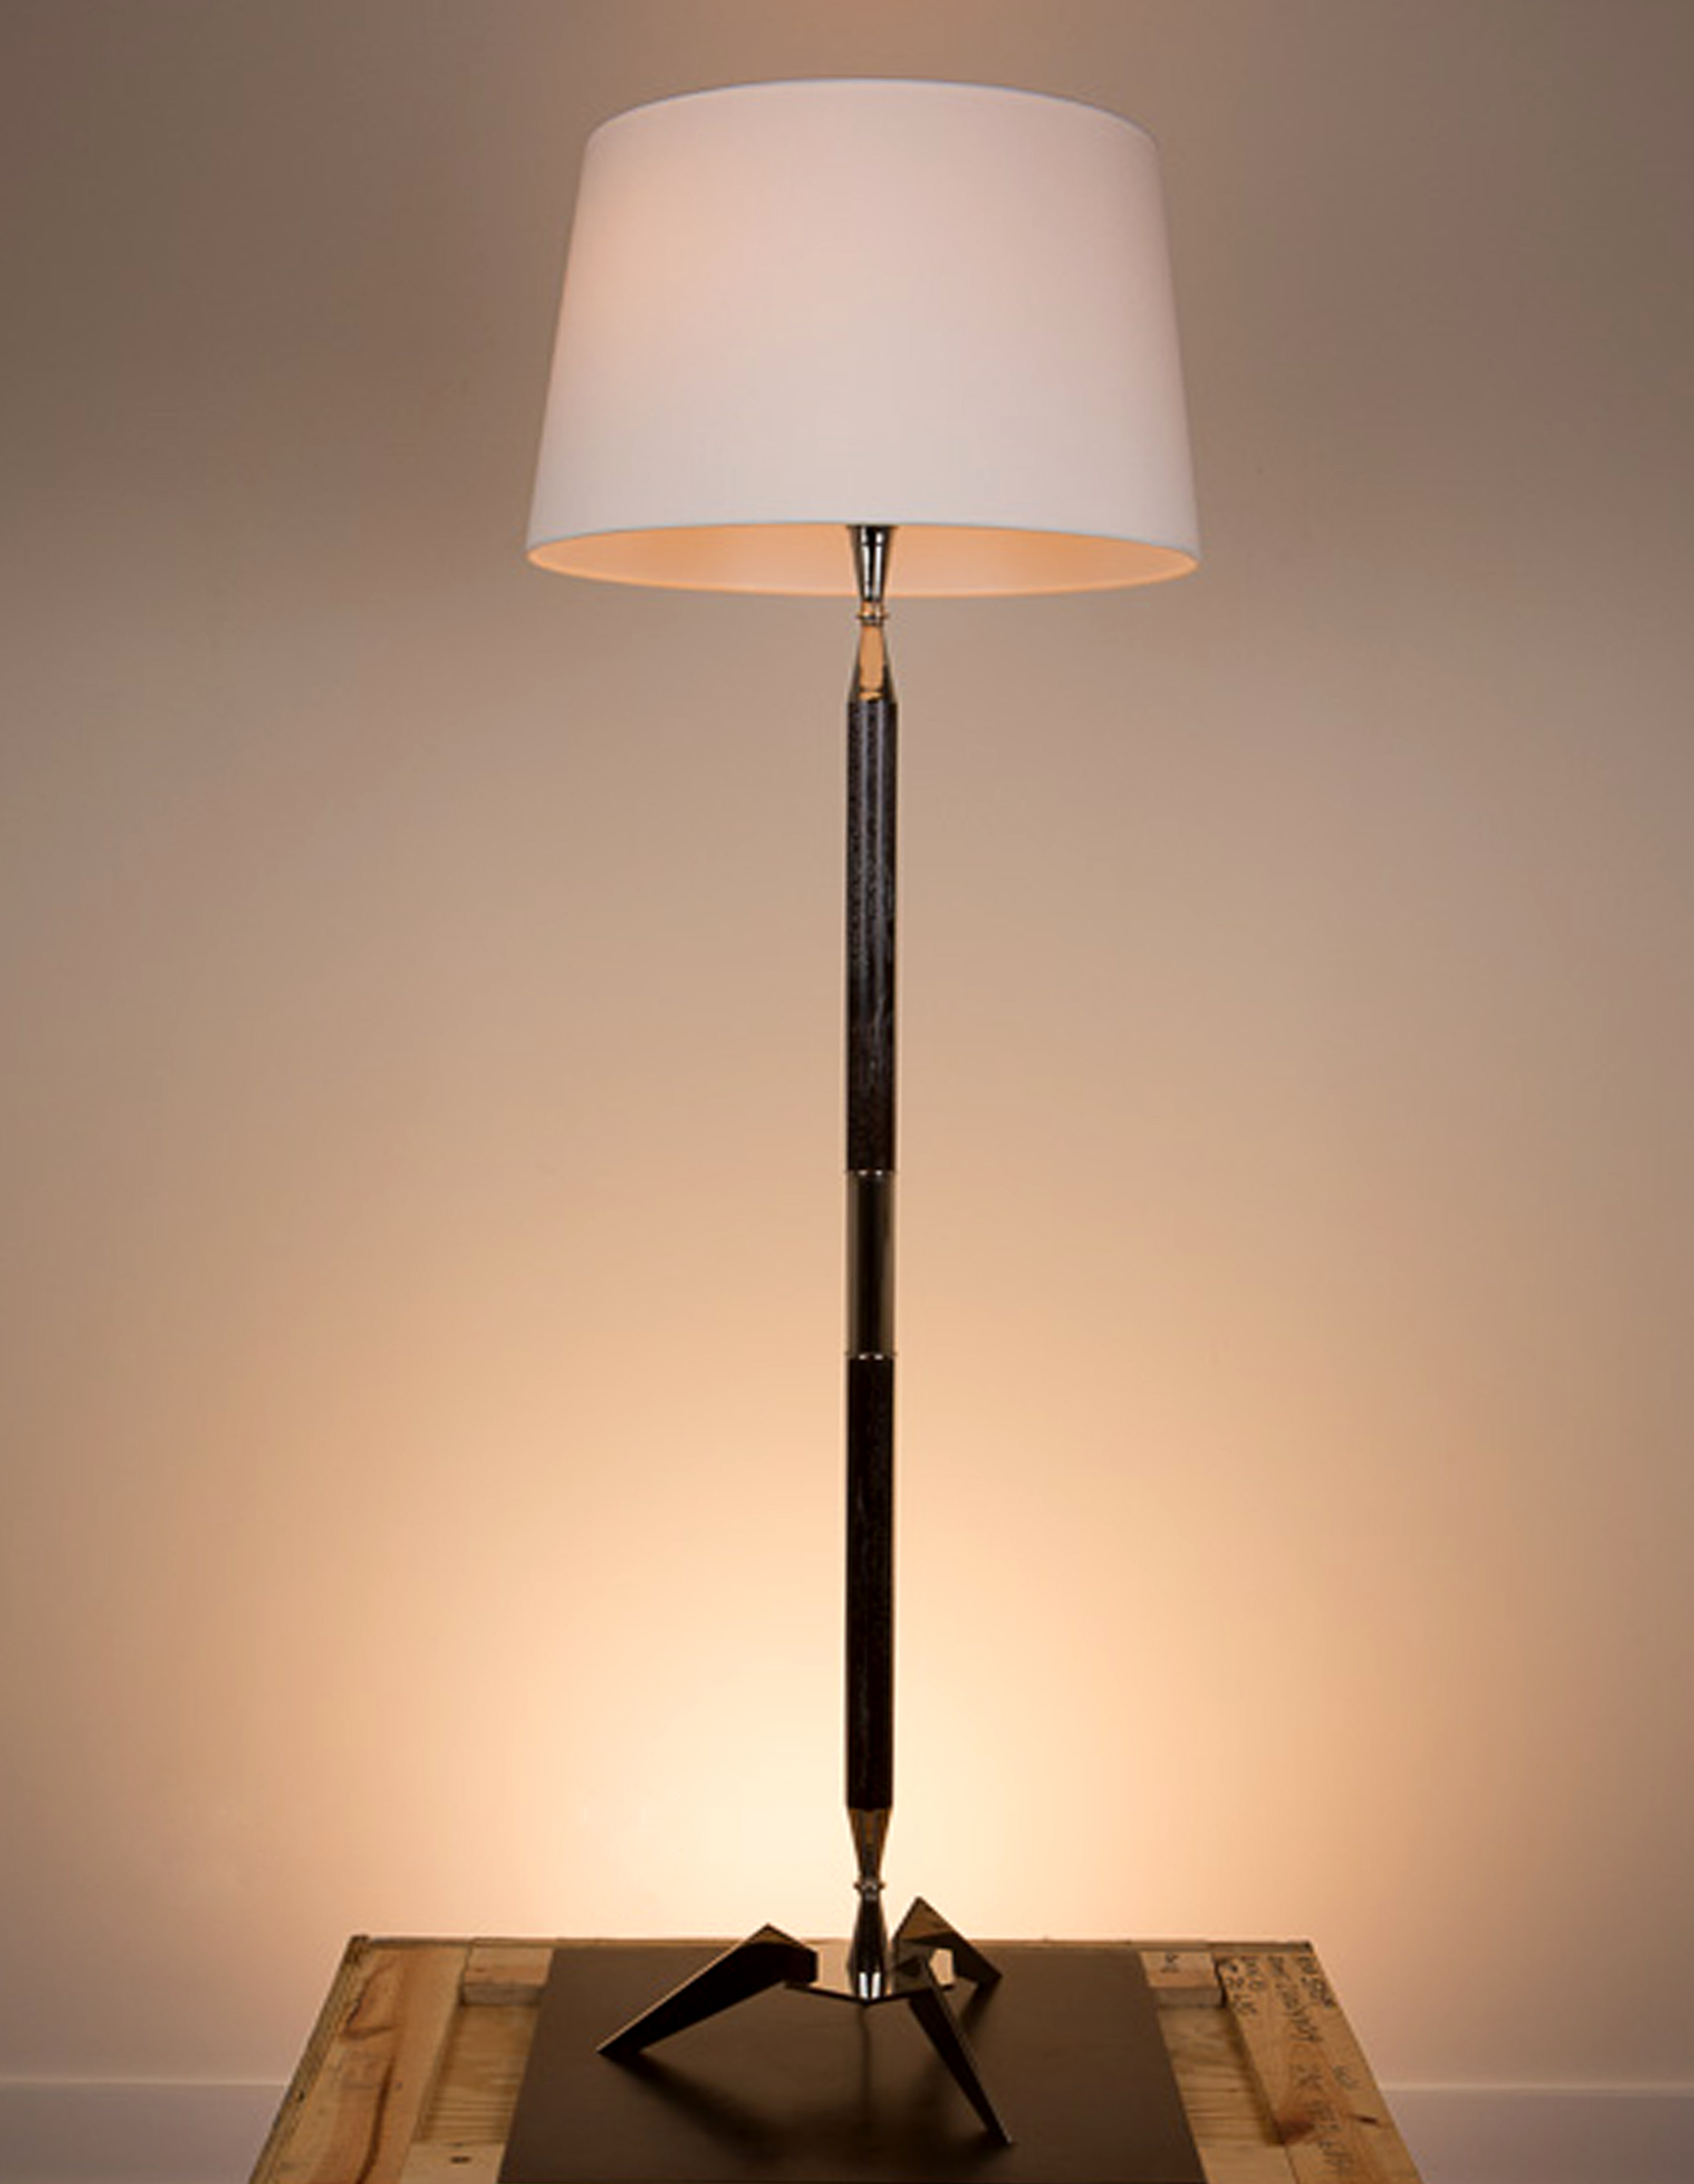 Apollo Floor Lamp  Espresso mica cerused white oak with polished nickel fittings. 870 eggshell linen shade.